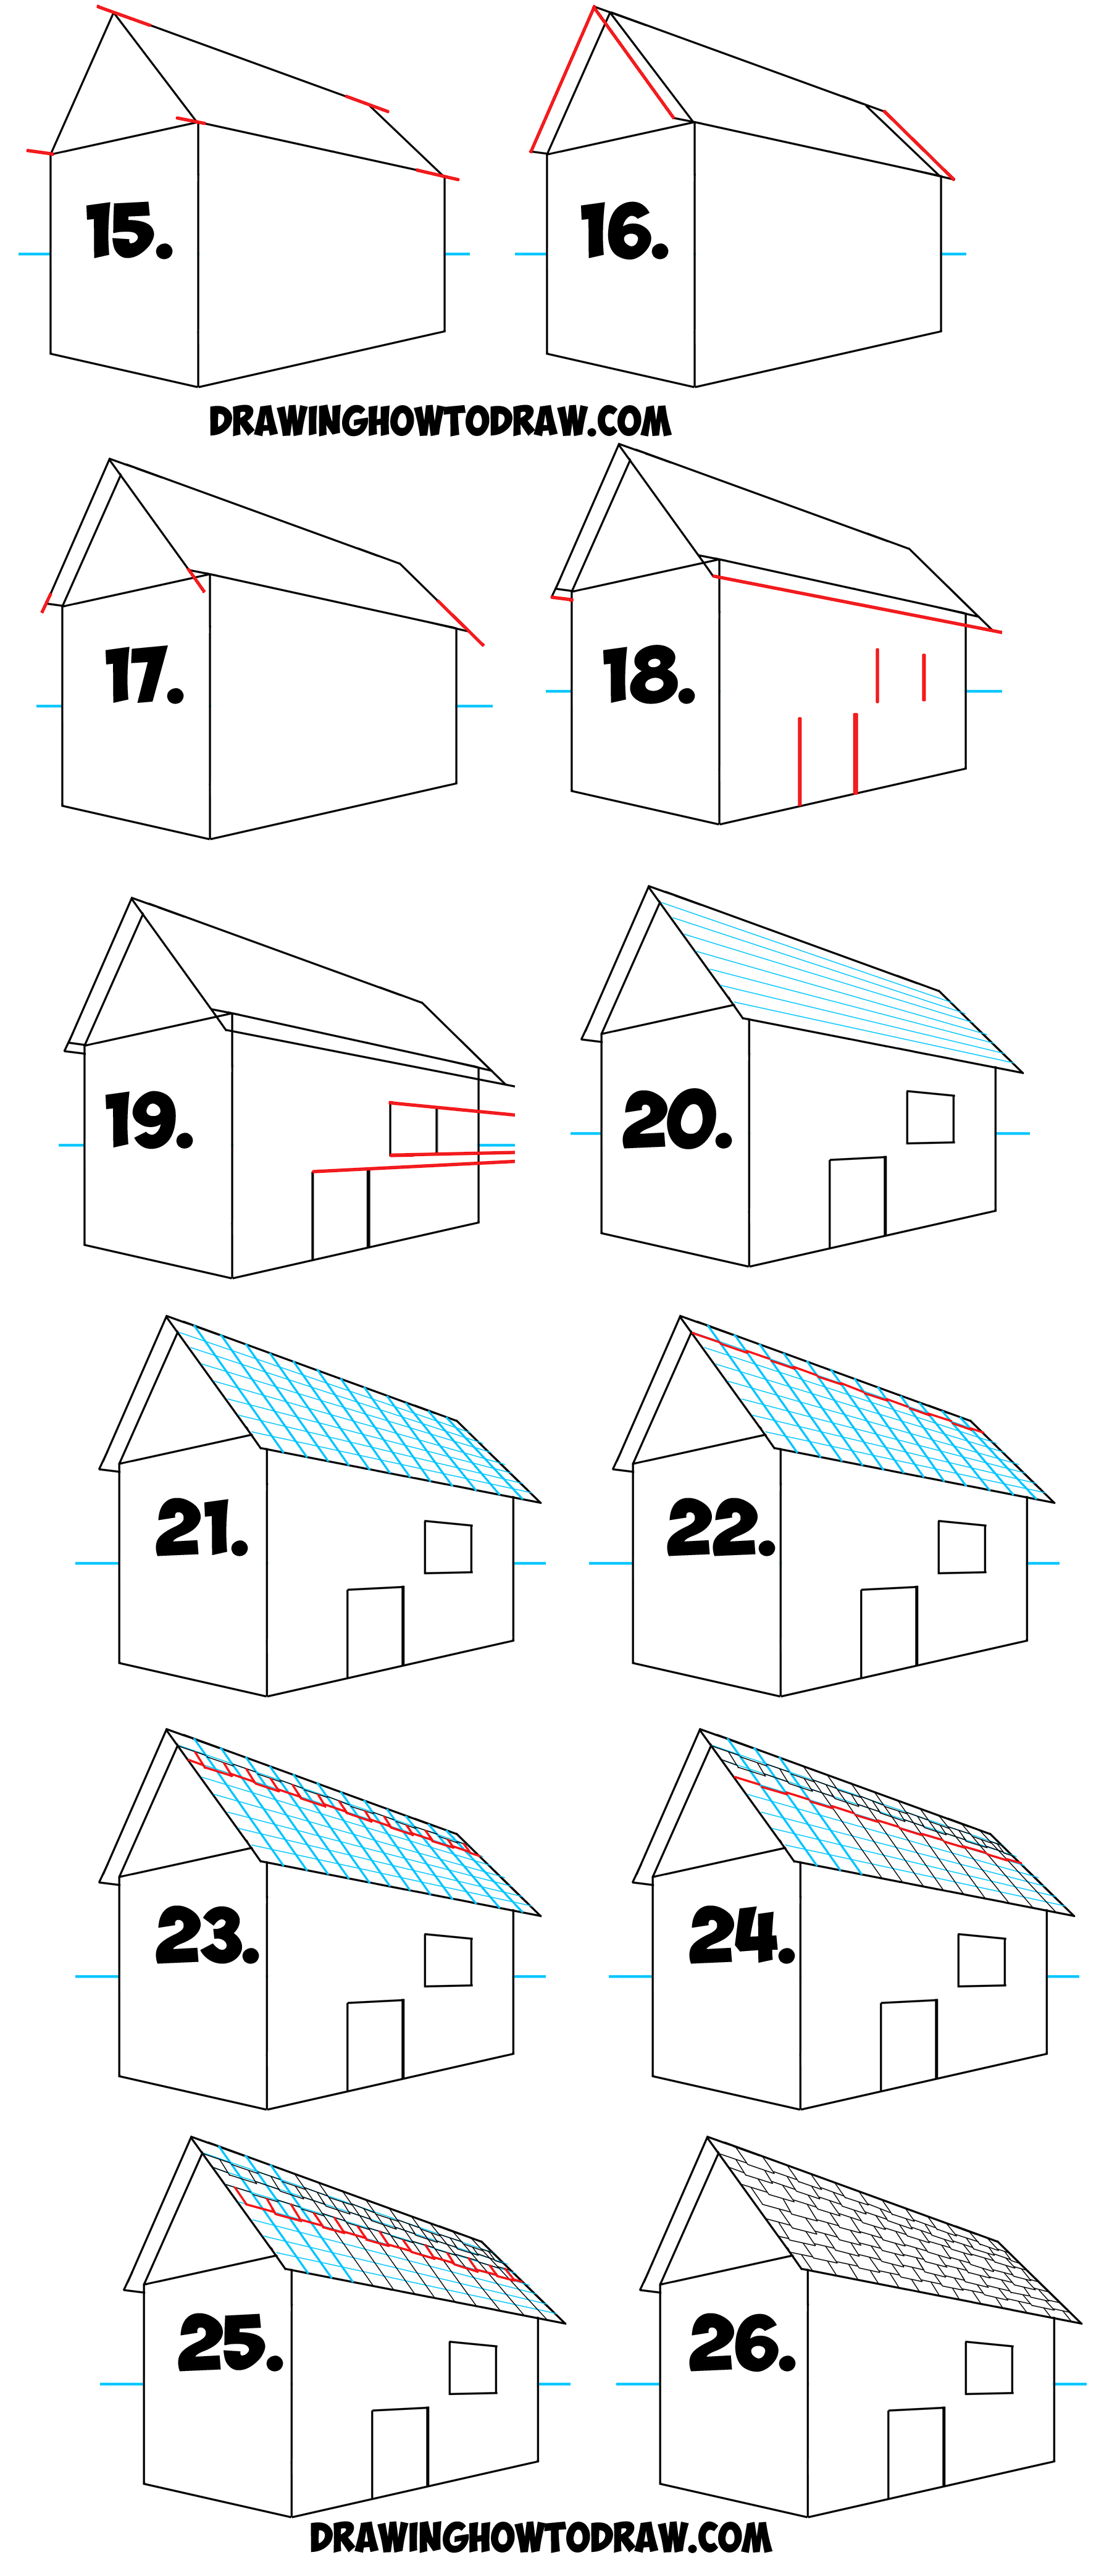 Learn How to Draw a Roof and Shingles with 2 Point Perspective - Simple Steps Drawing Lesson